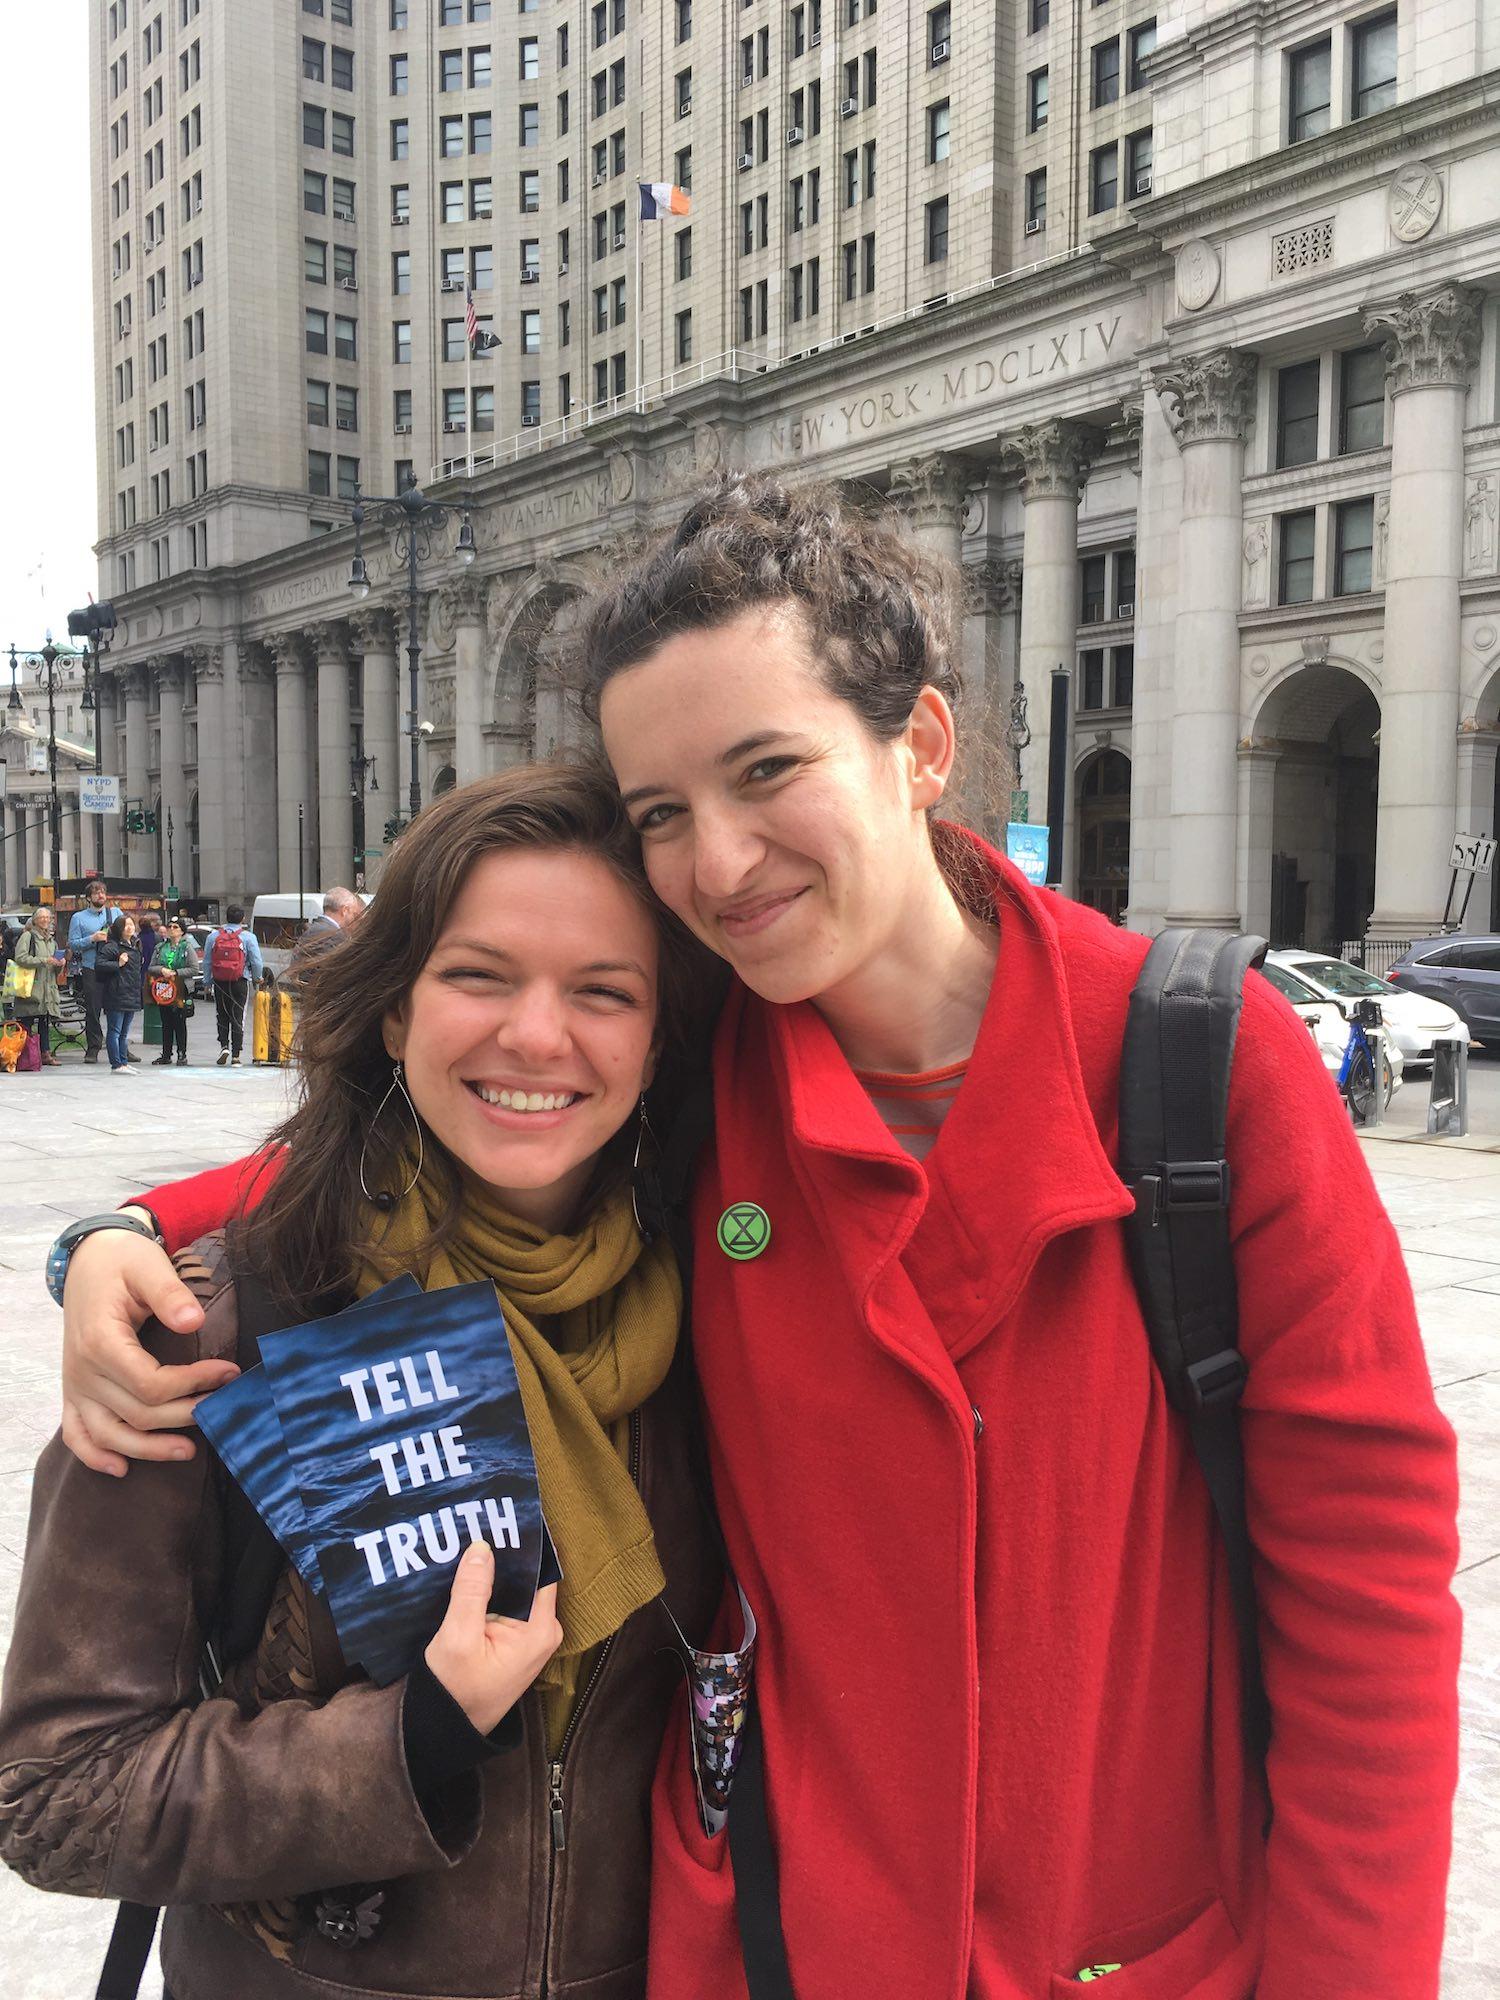 Liz Moyer and Zettie Shapey (l–r), in front of the David N. Dinkins Manhattan Municipal Building facing City Hall